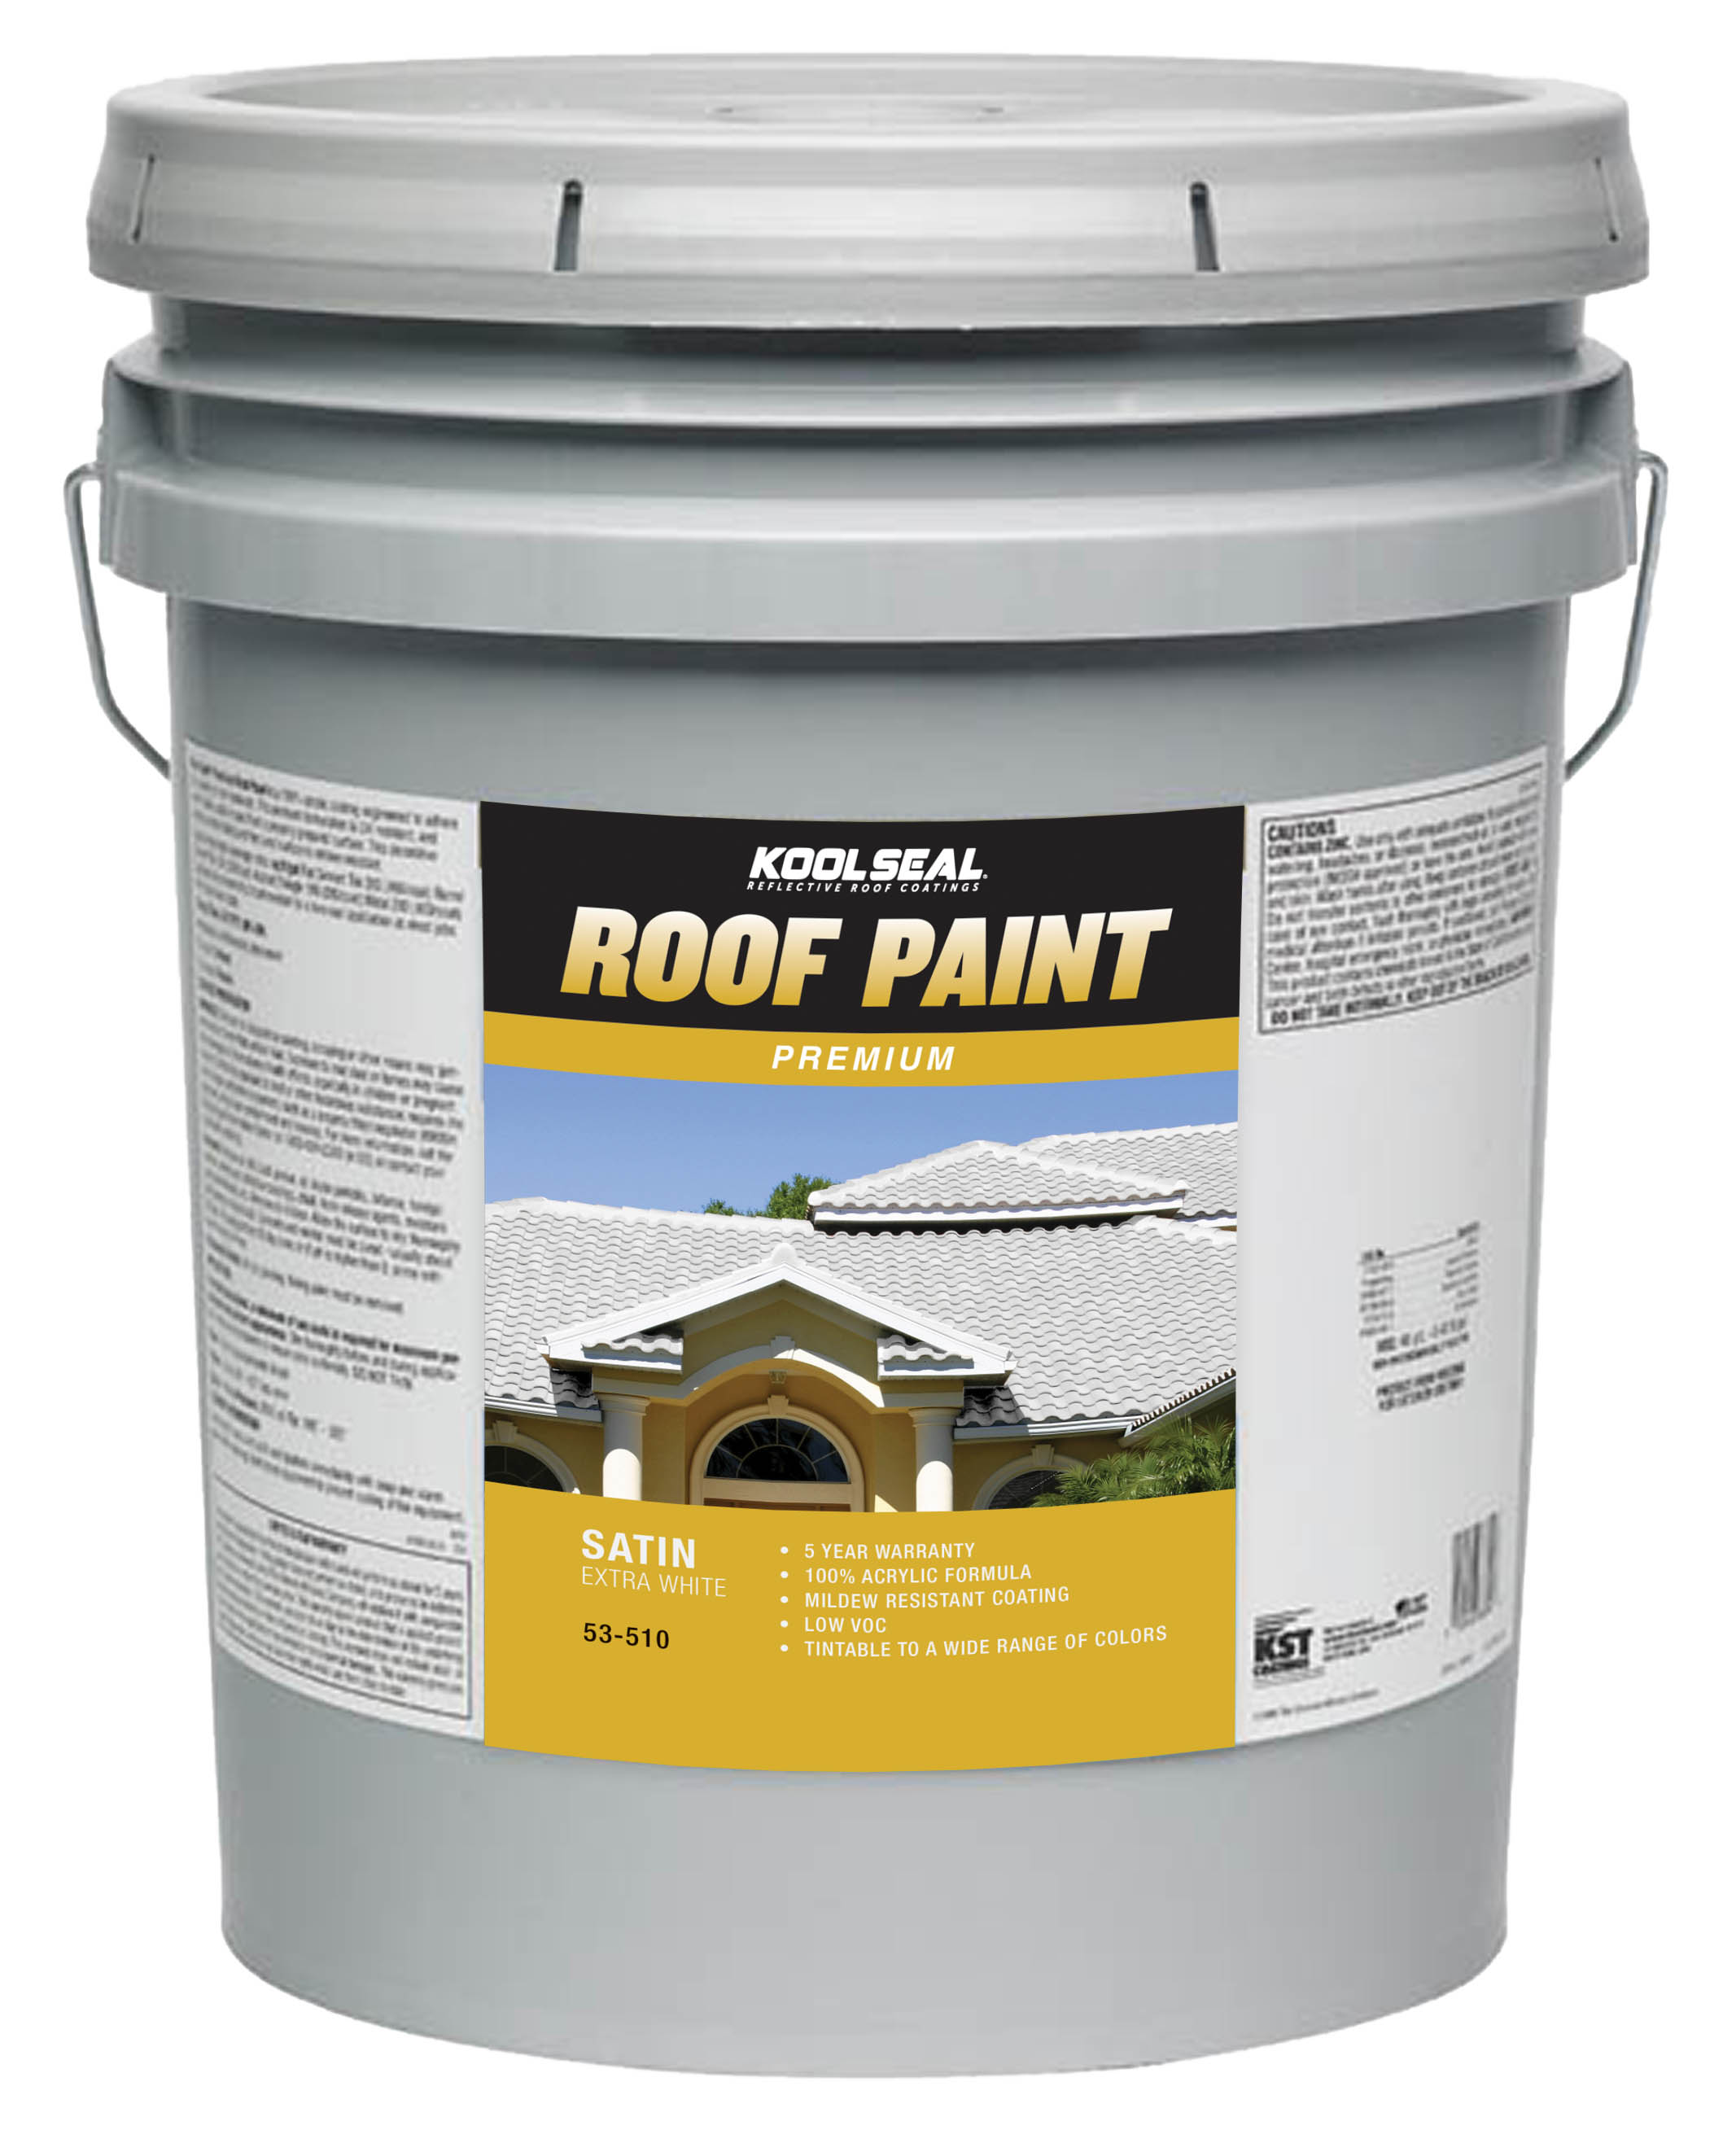 Roof Paint Premium Koolseal